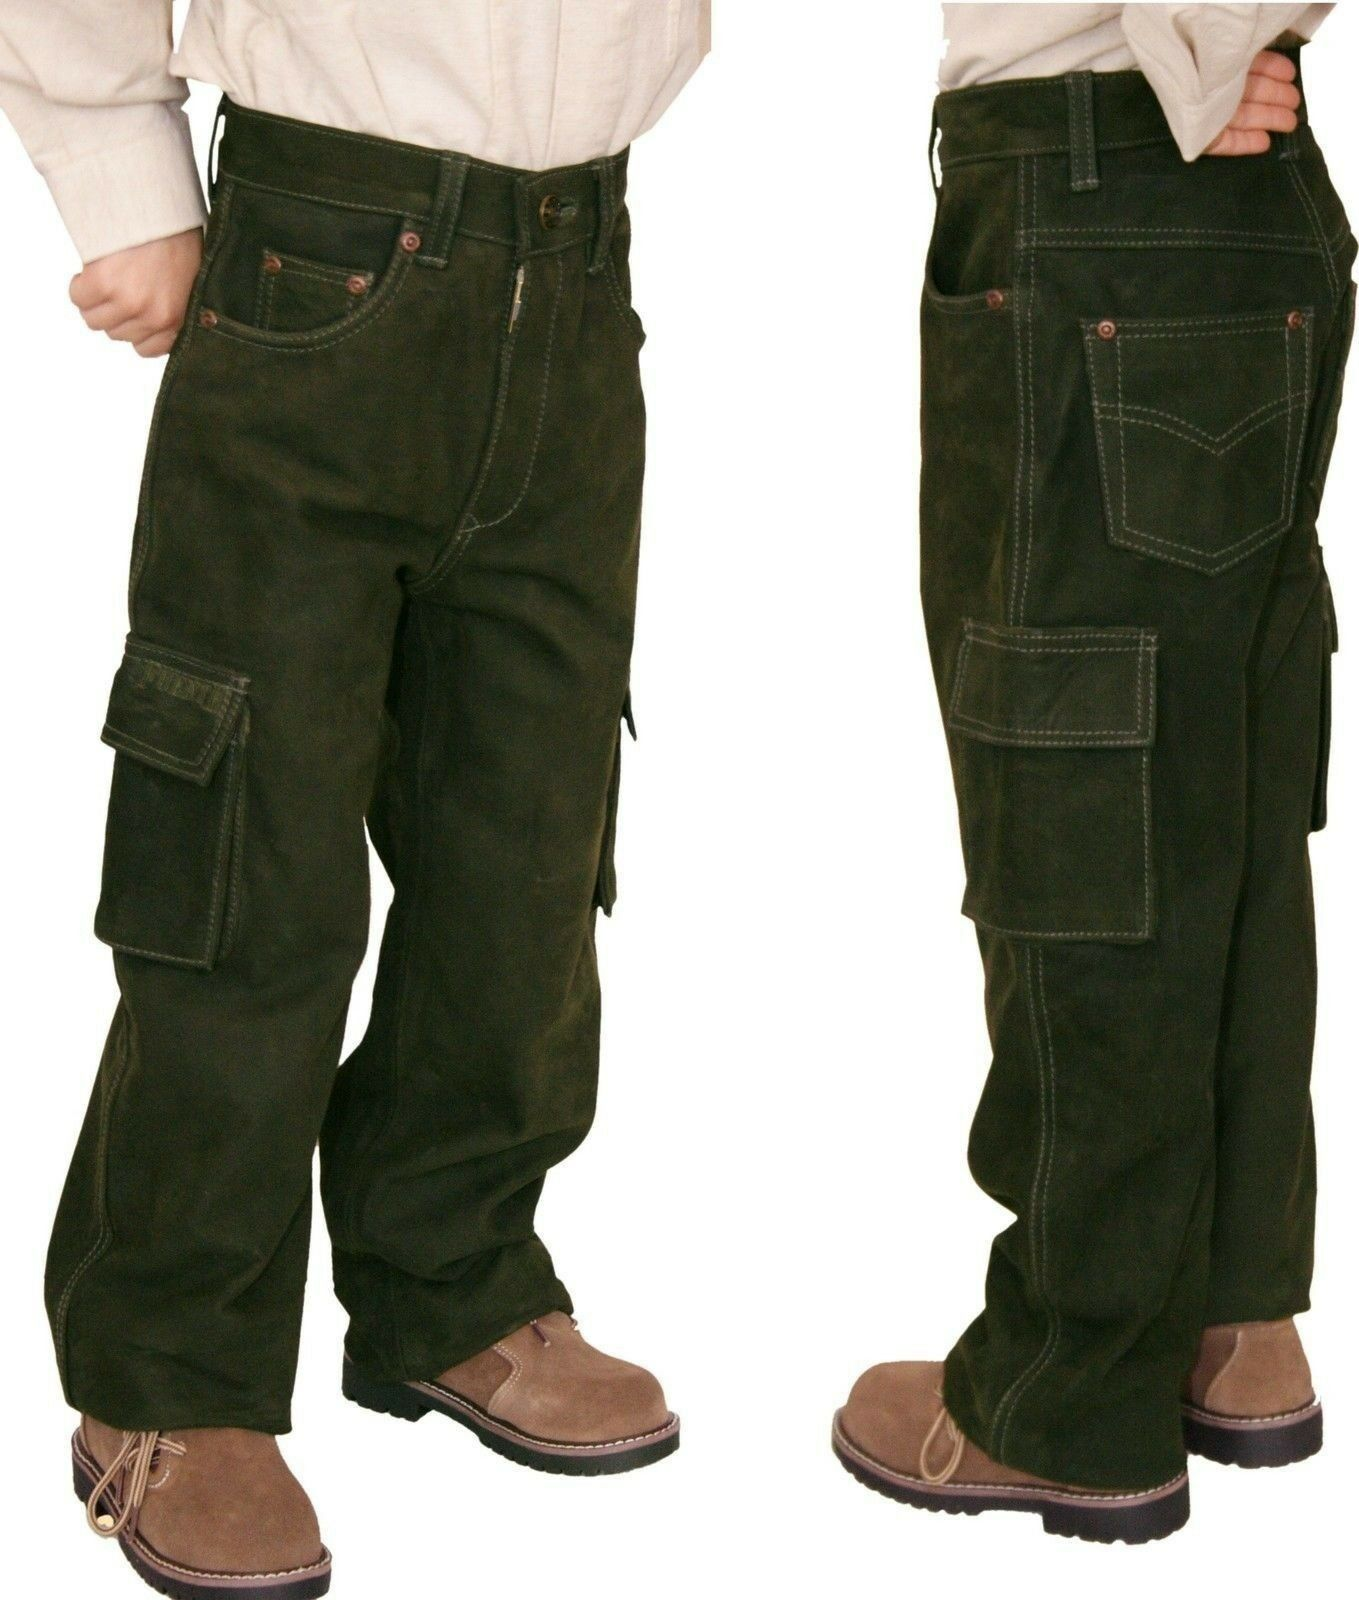 Lederhose Kinder Jagdhose Outdoorhose Buff-Nubuk mit Beintasche + Regulator